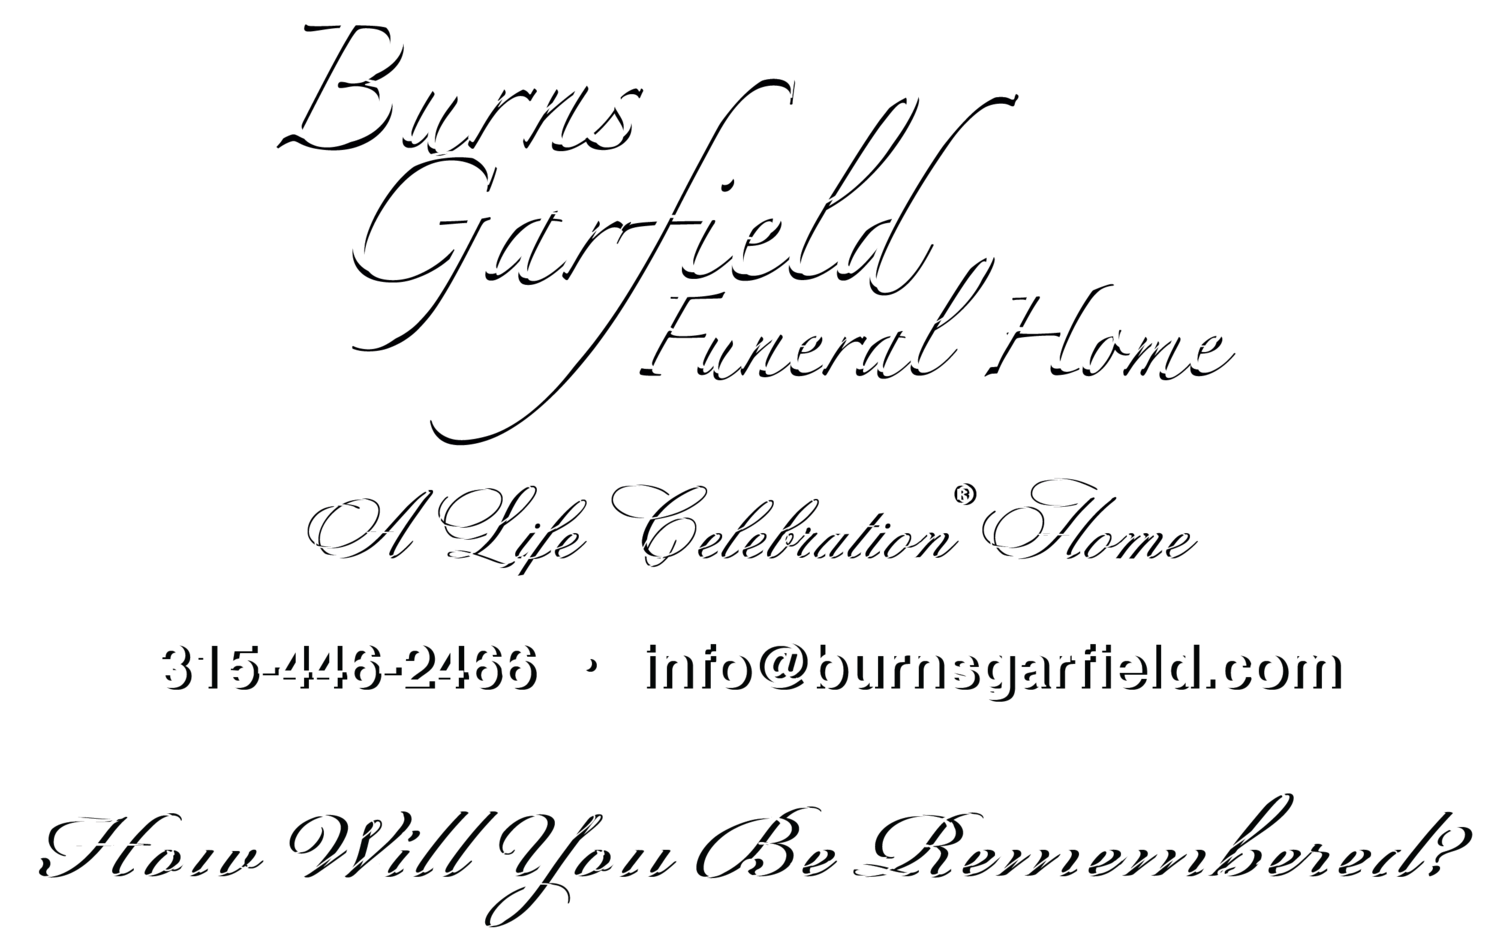 Burns-Garfield Funeral Home